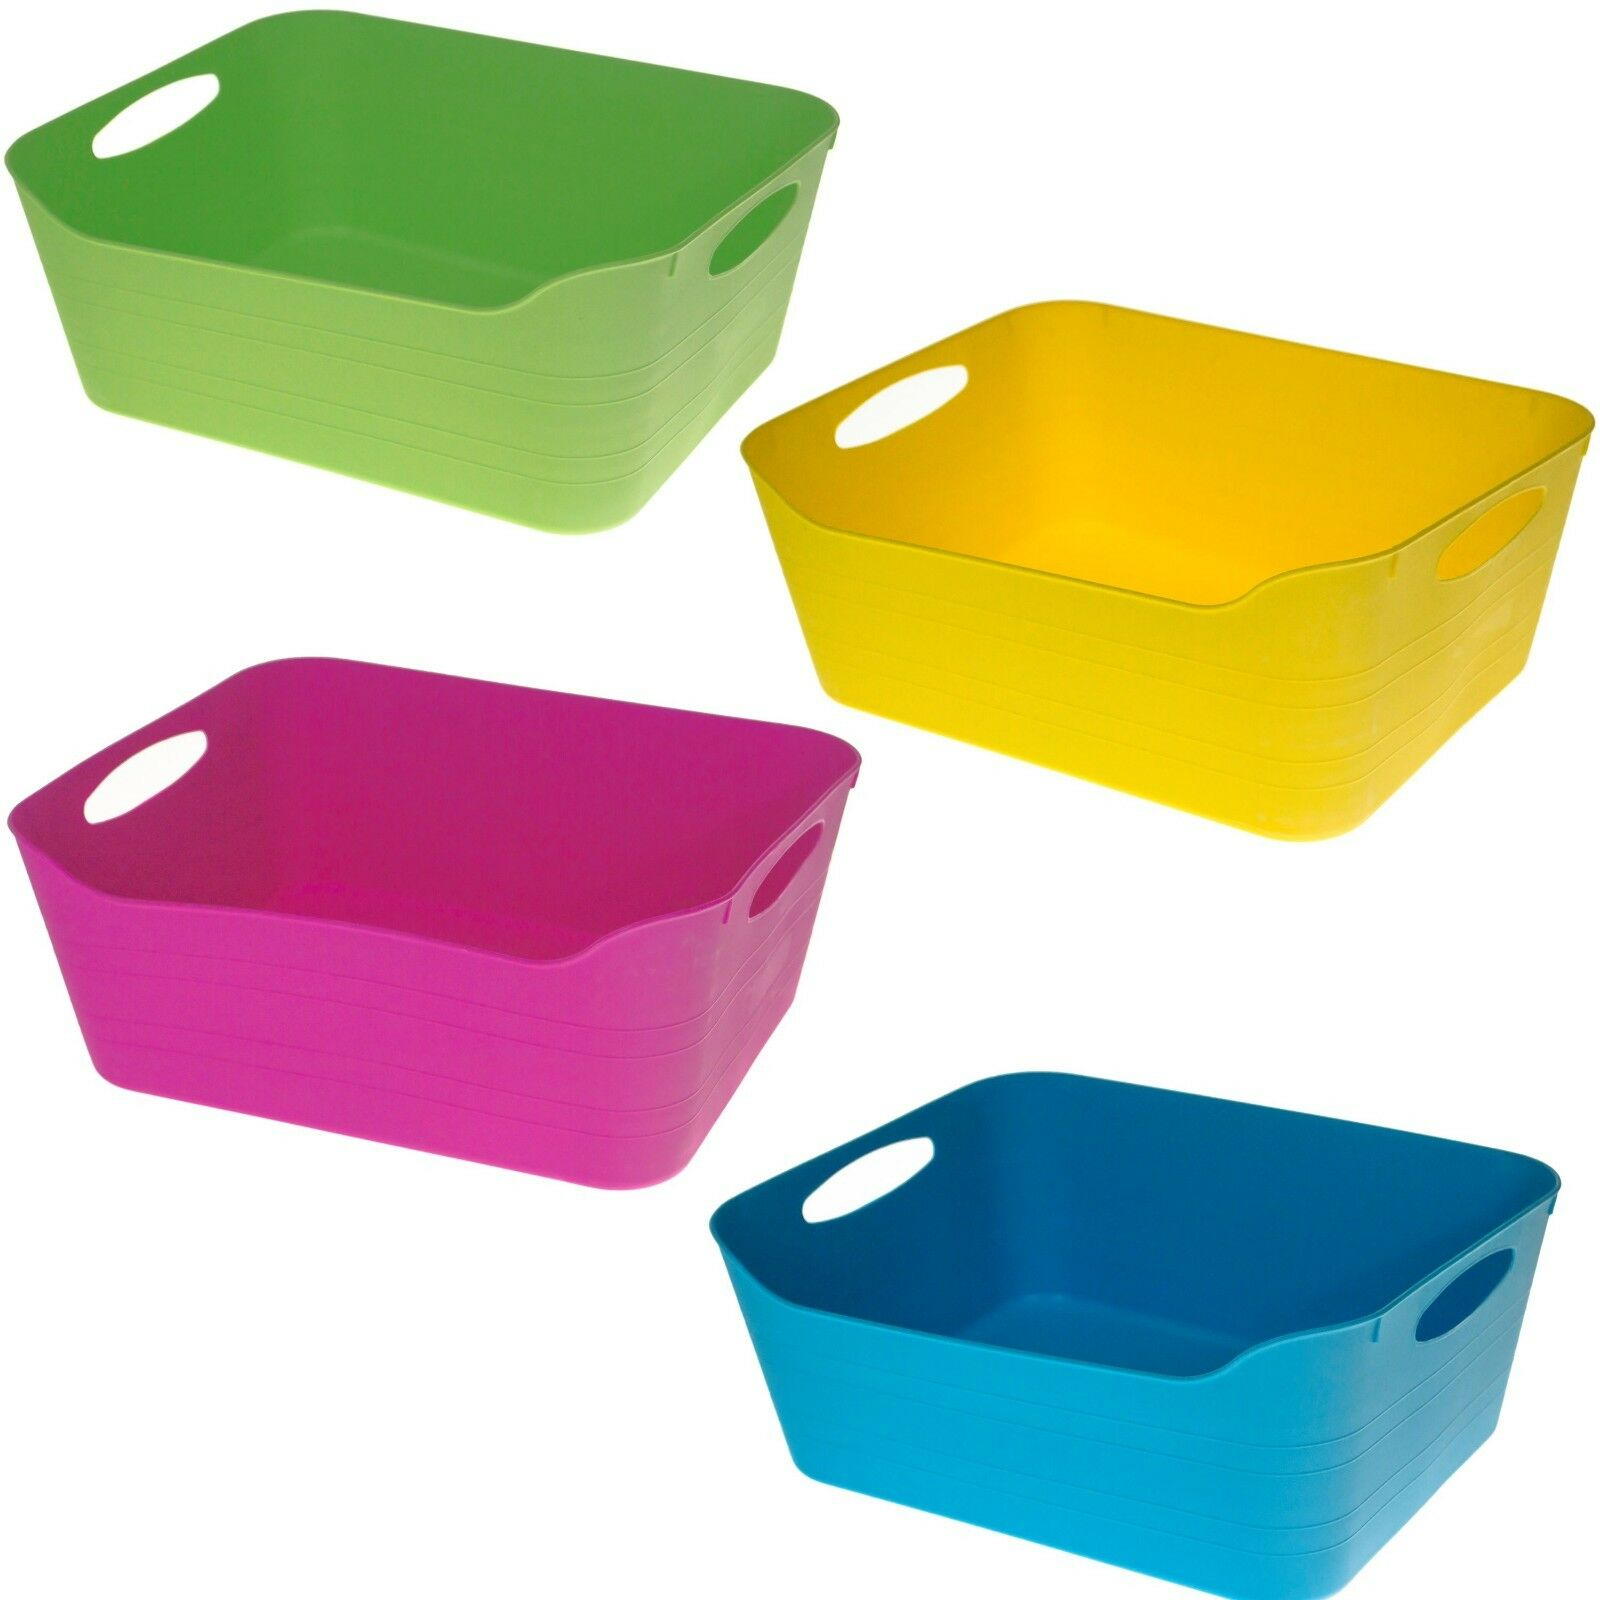 COLOURFUL FLEXI BASKET Plastic Tub Tubs for Kids Toys Clothing ...